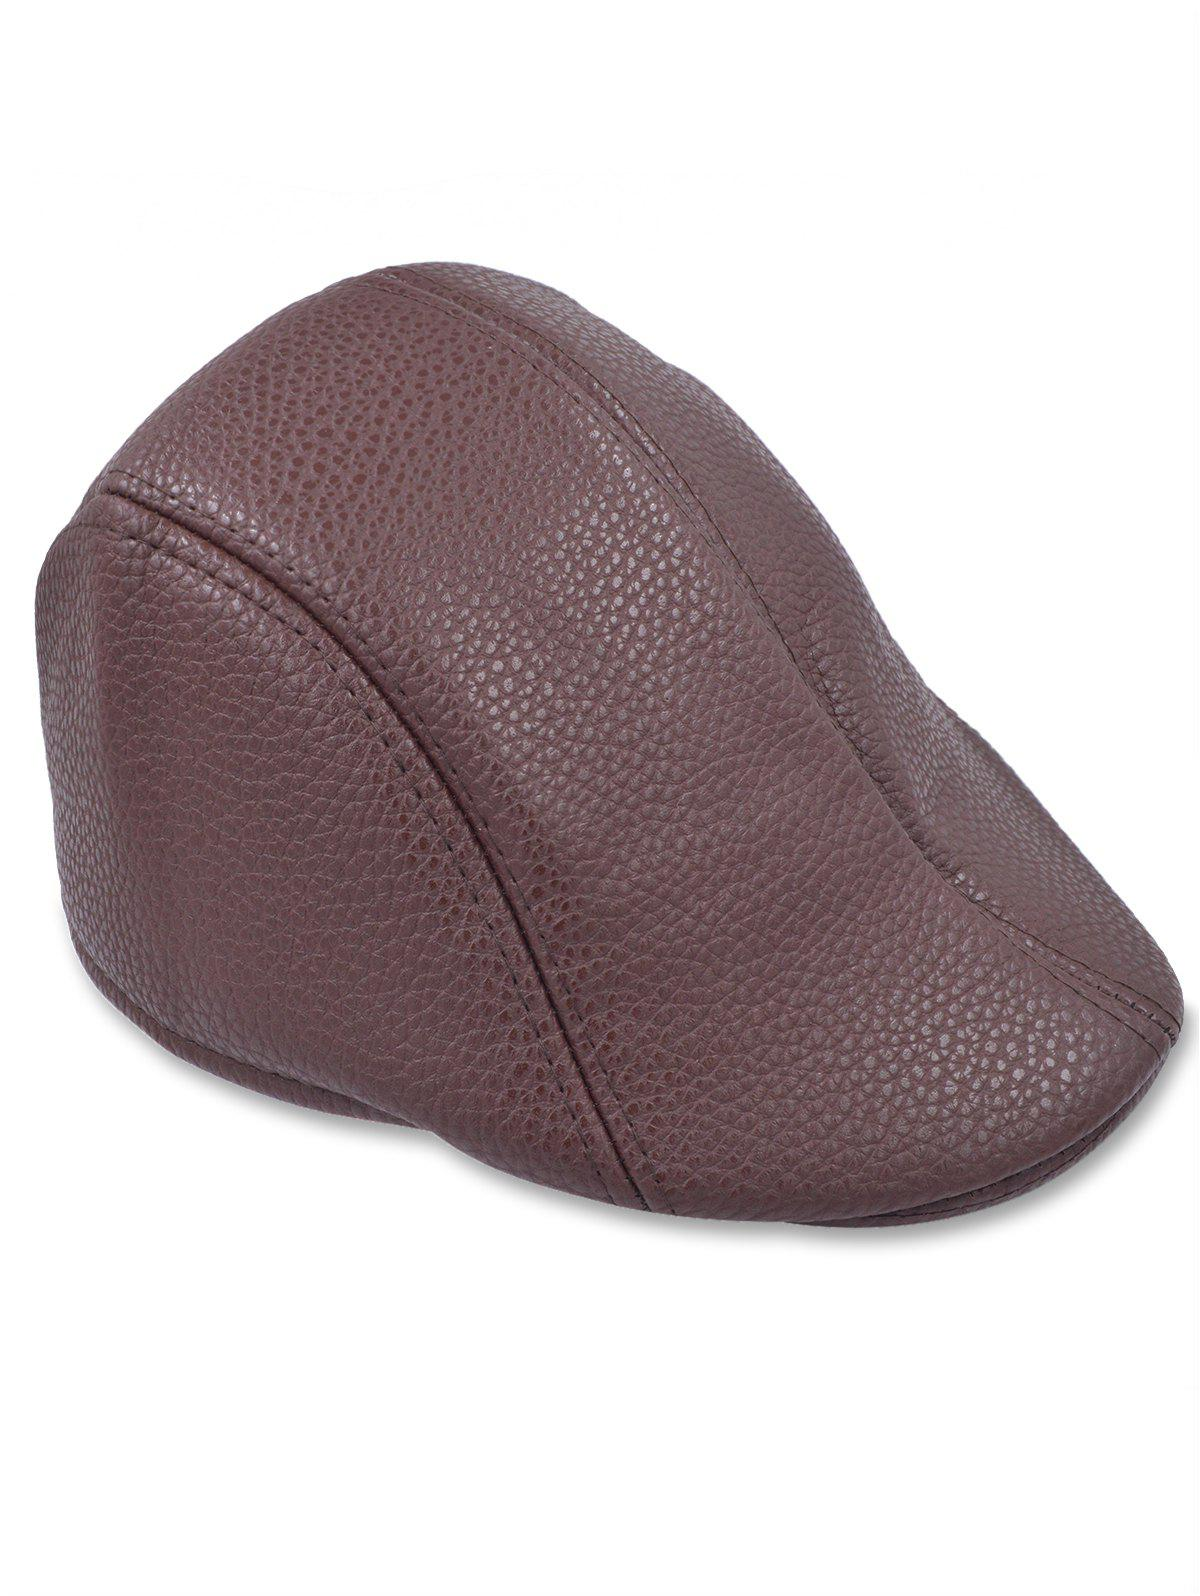 Online Line Embroidery Faux Leather Newsboy Hat